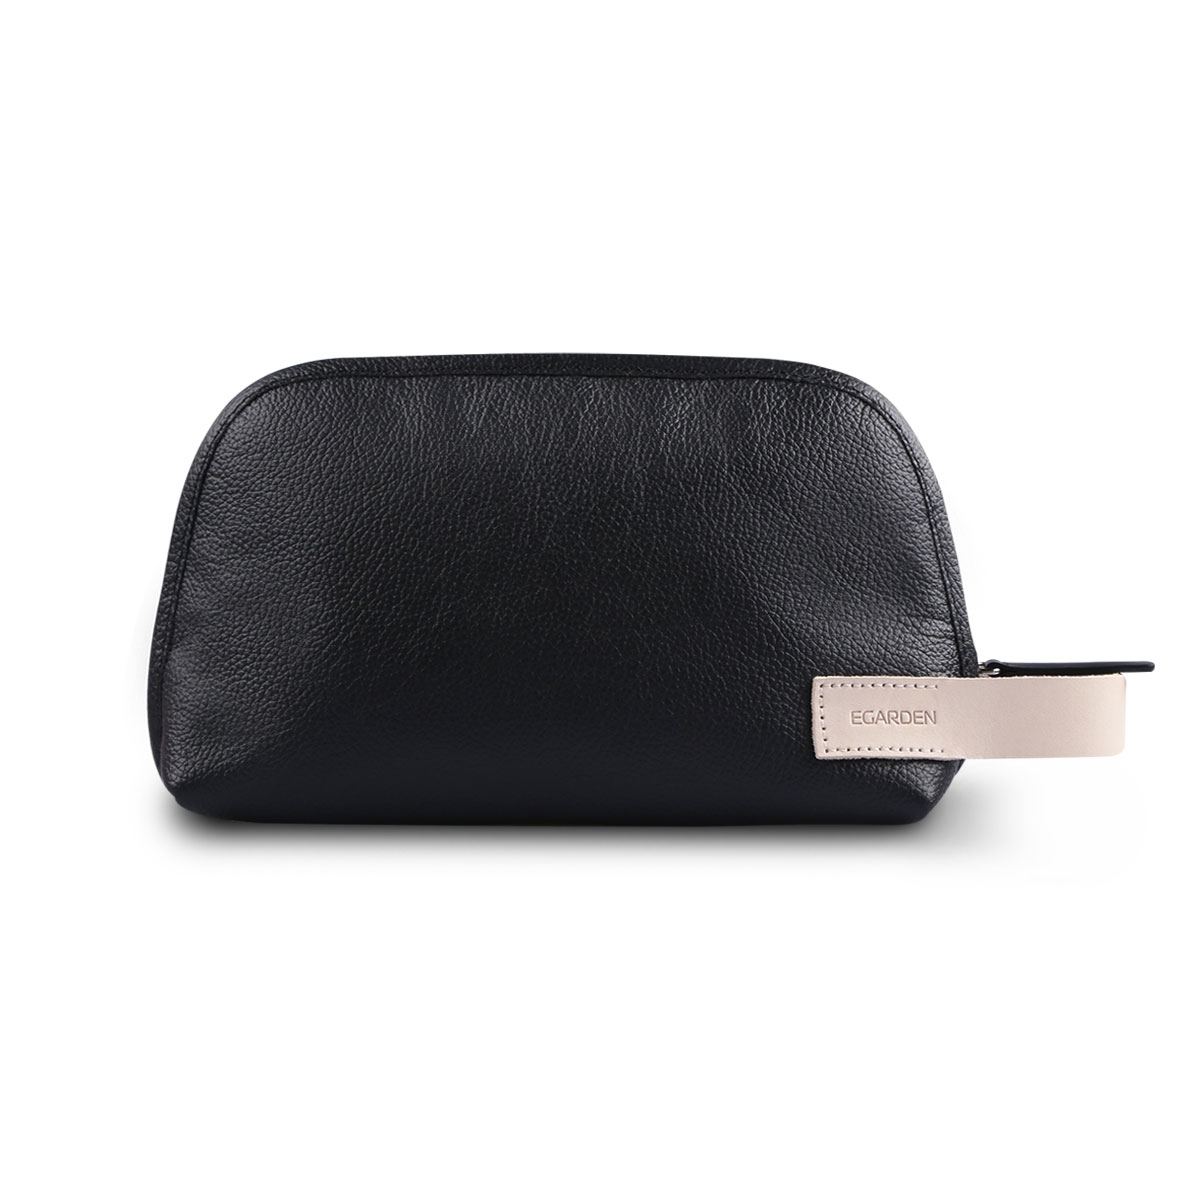 iT Pouch Black(가죽)